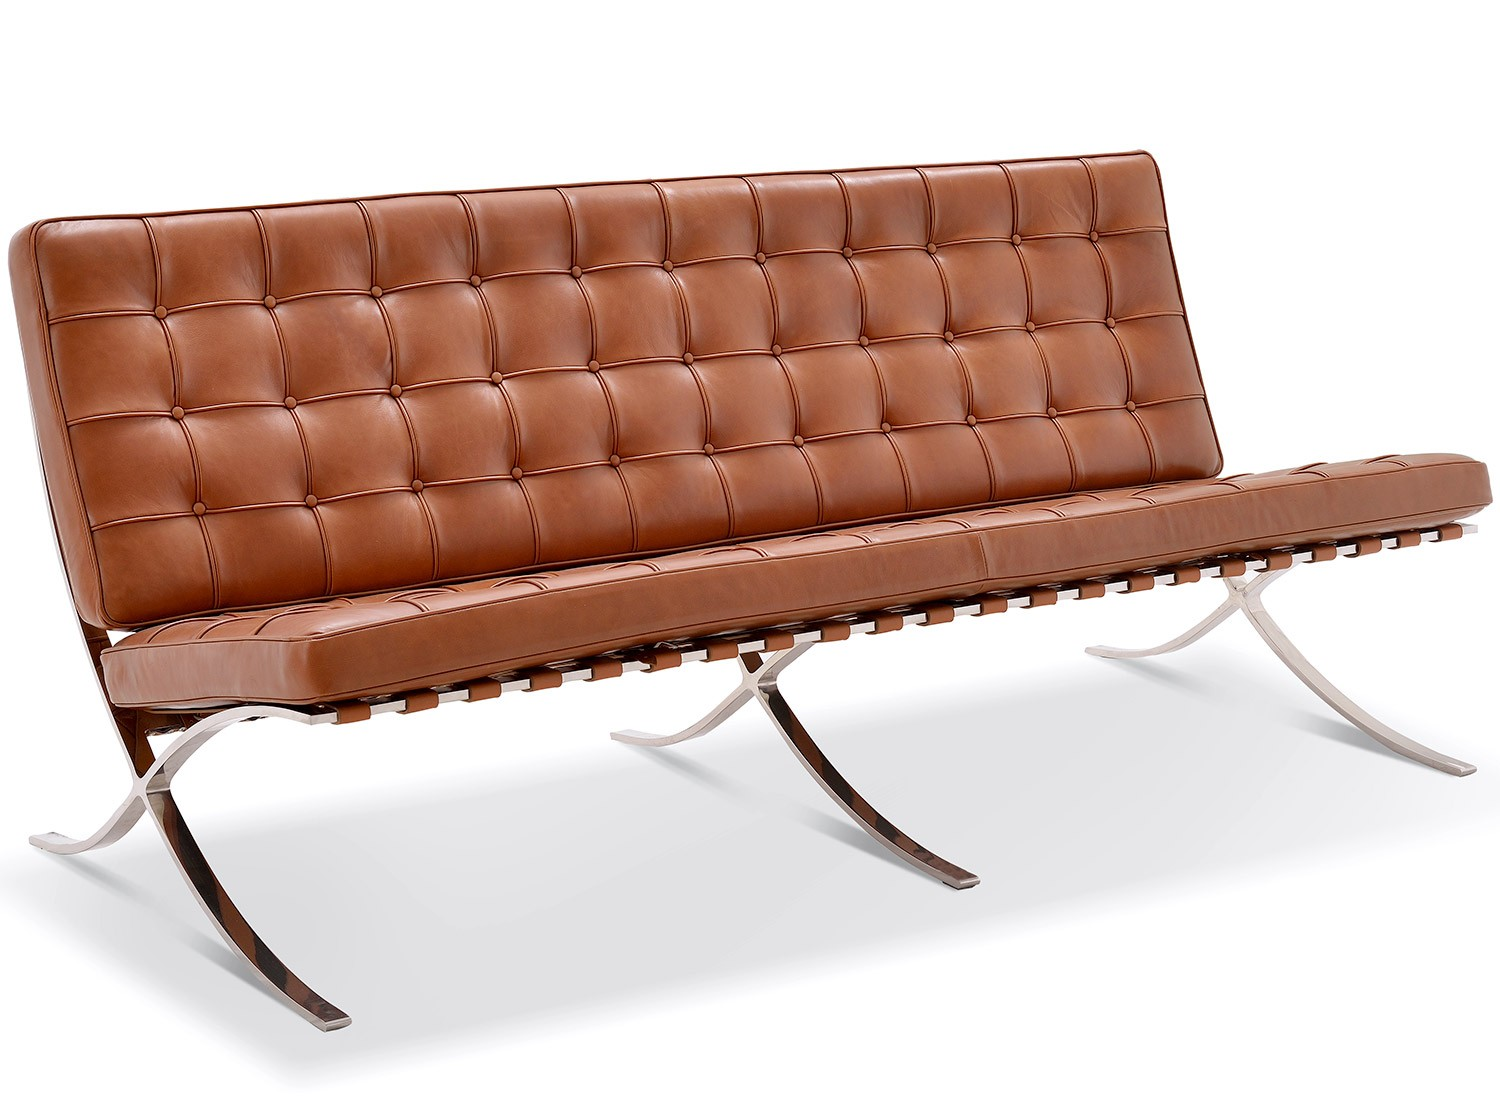 barcelona sofa roma leather reviews replica 3 seater chicicat pictured in vintage tan waxed italian aniline